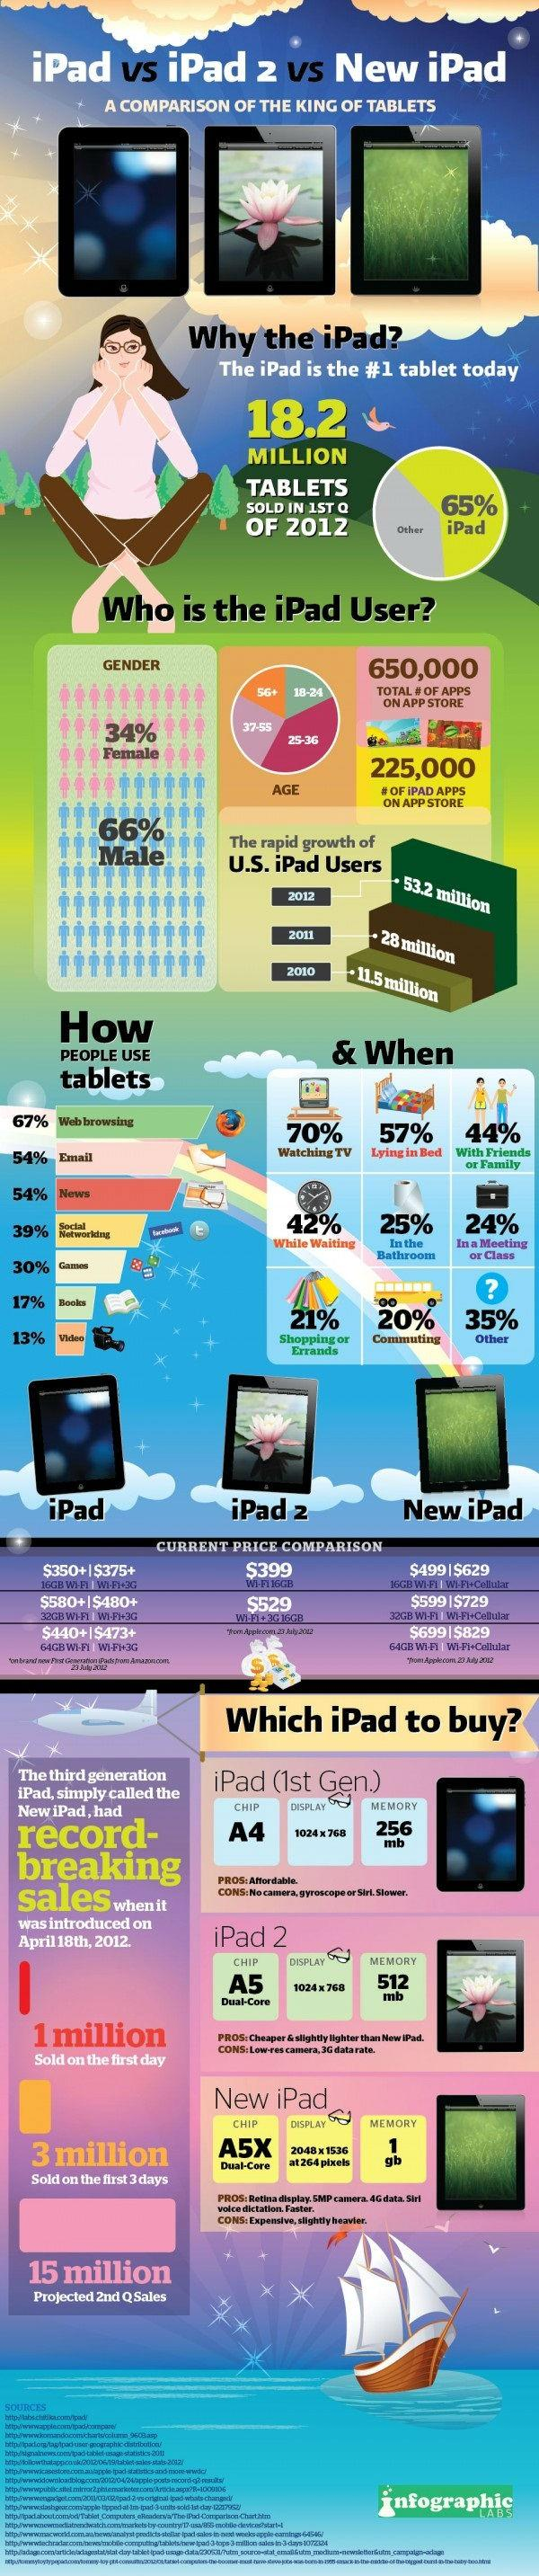 How You're Using Your iPad [INFOGRAPHIC]